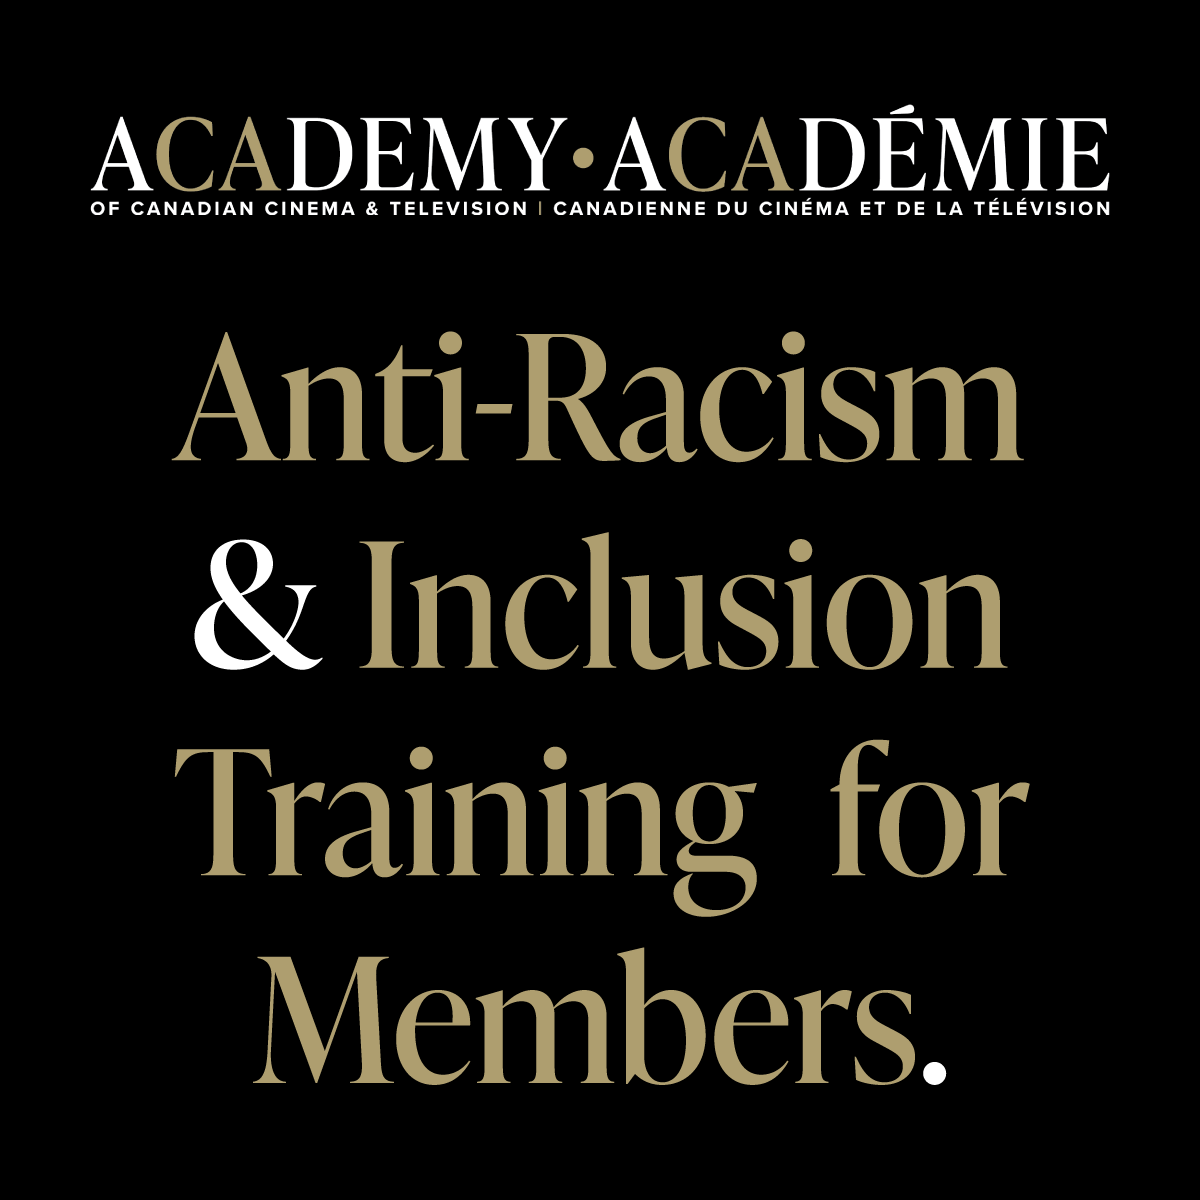 Anti-Racism Training for Members: Session 2 - Introduction to Active Allyship